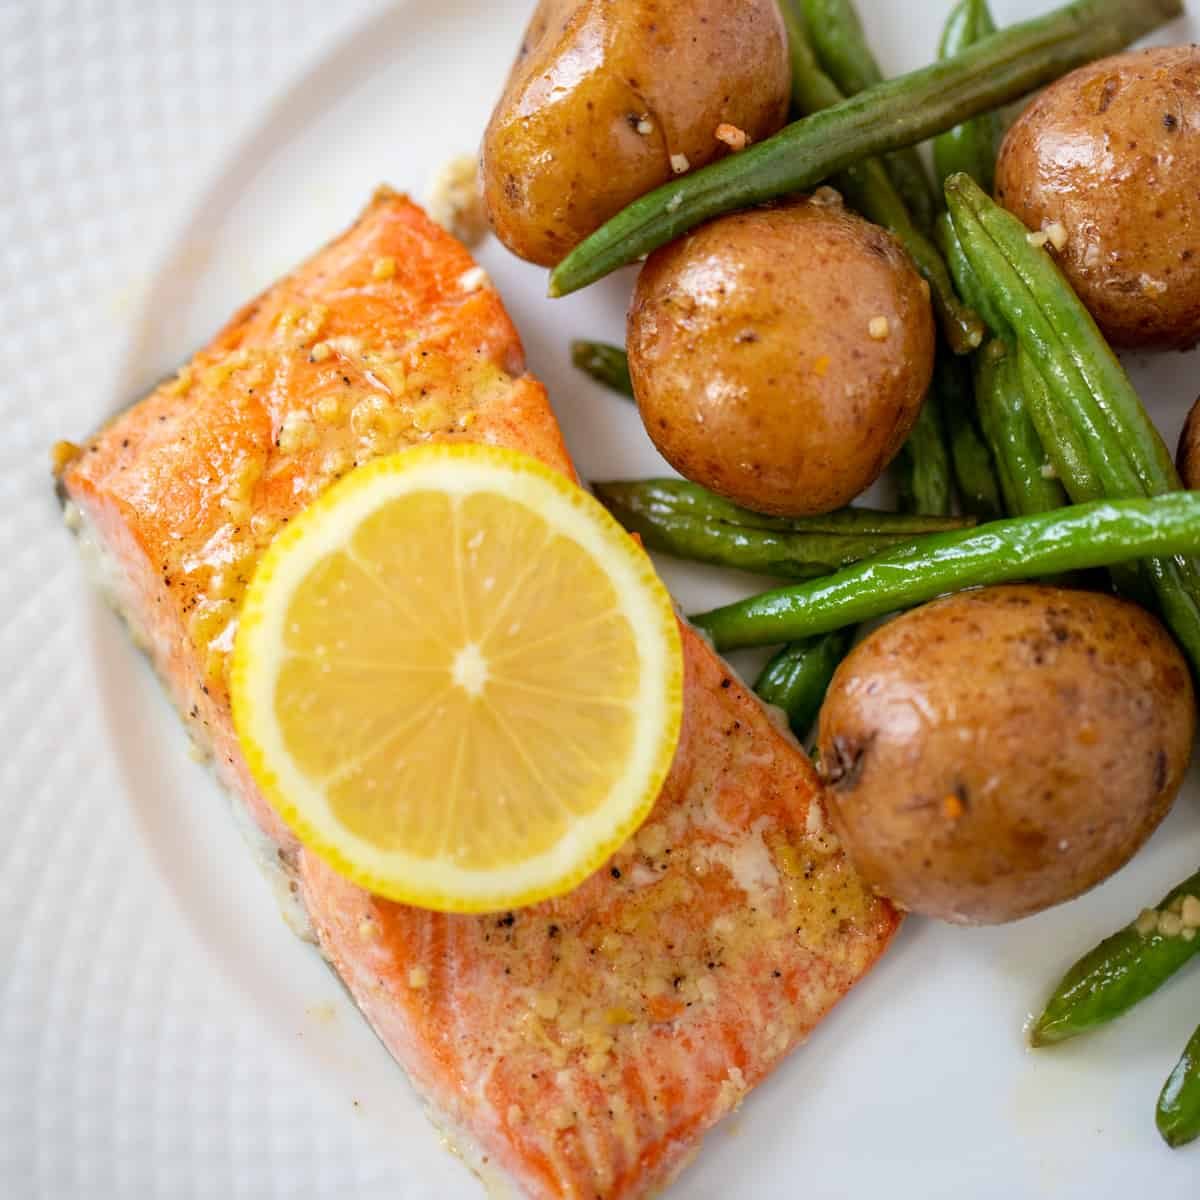 Honey Garlic Salmon on plate with green beans and potatoes to the side.